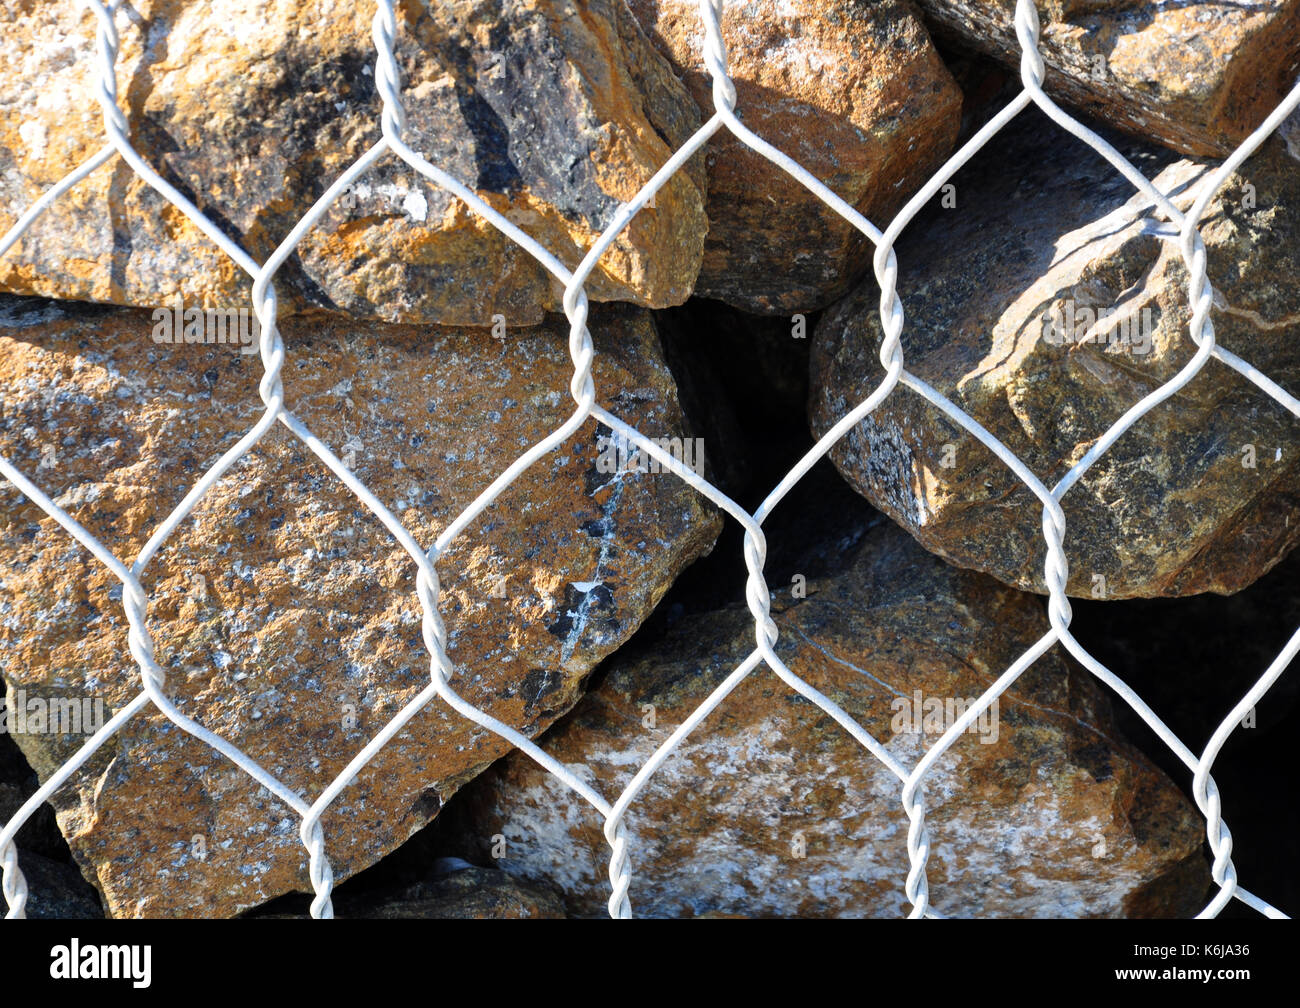 Wire Fence Filled Stones,Stones in metal wire cage - Stock Image